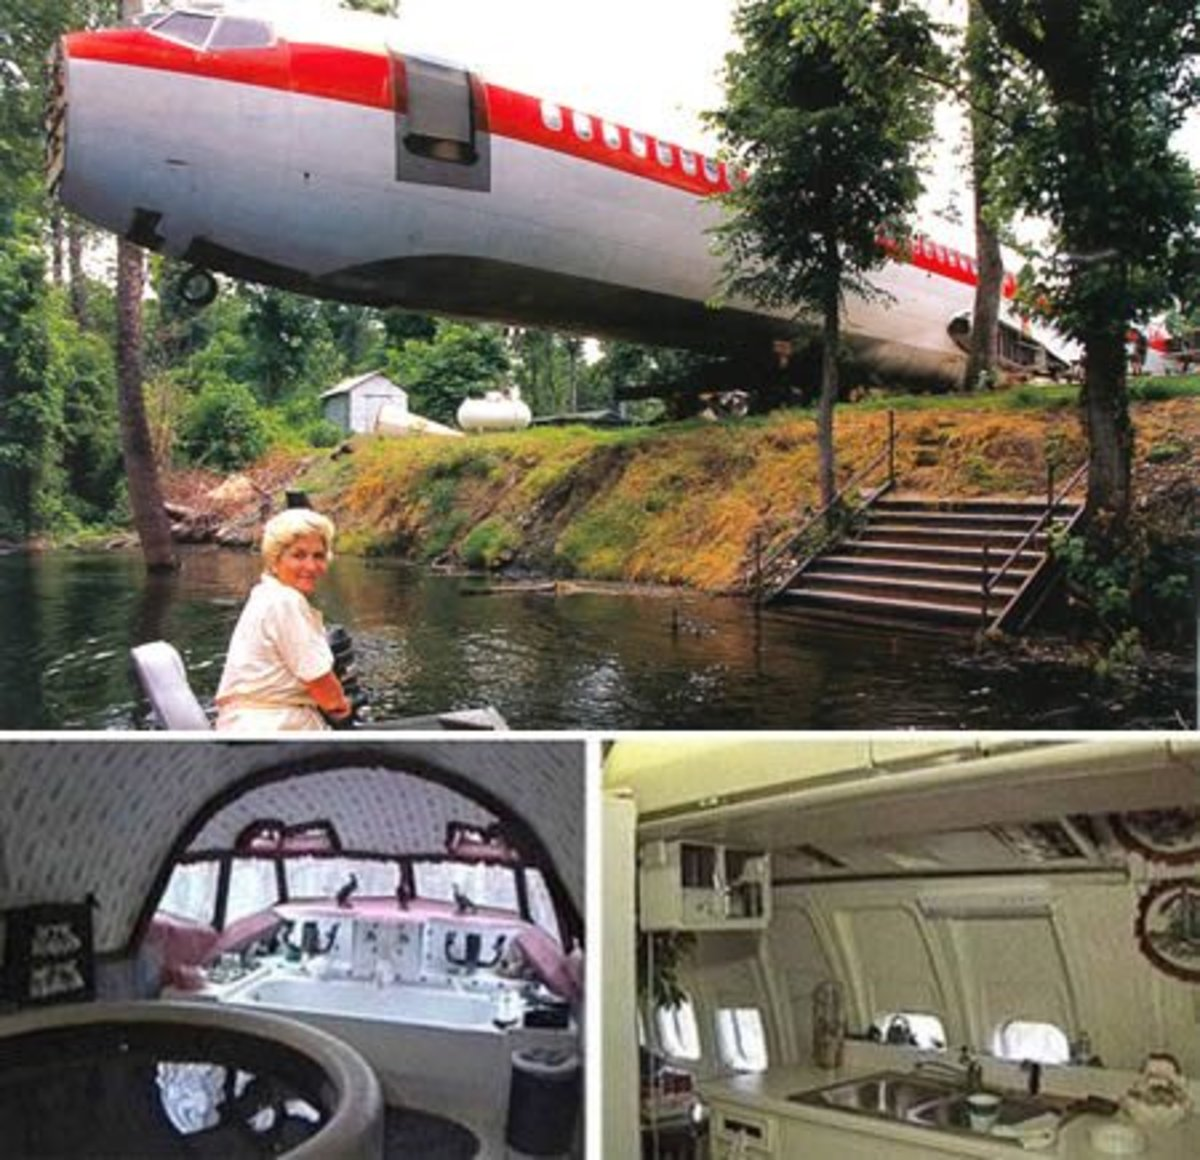 The Boeing 727 House, in Benoit (Mississippi, USA). The plane set Joanne Ussary back $2,000.00, cost $4,000.00 to move, and $24,000.00 to renovate.